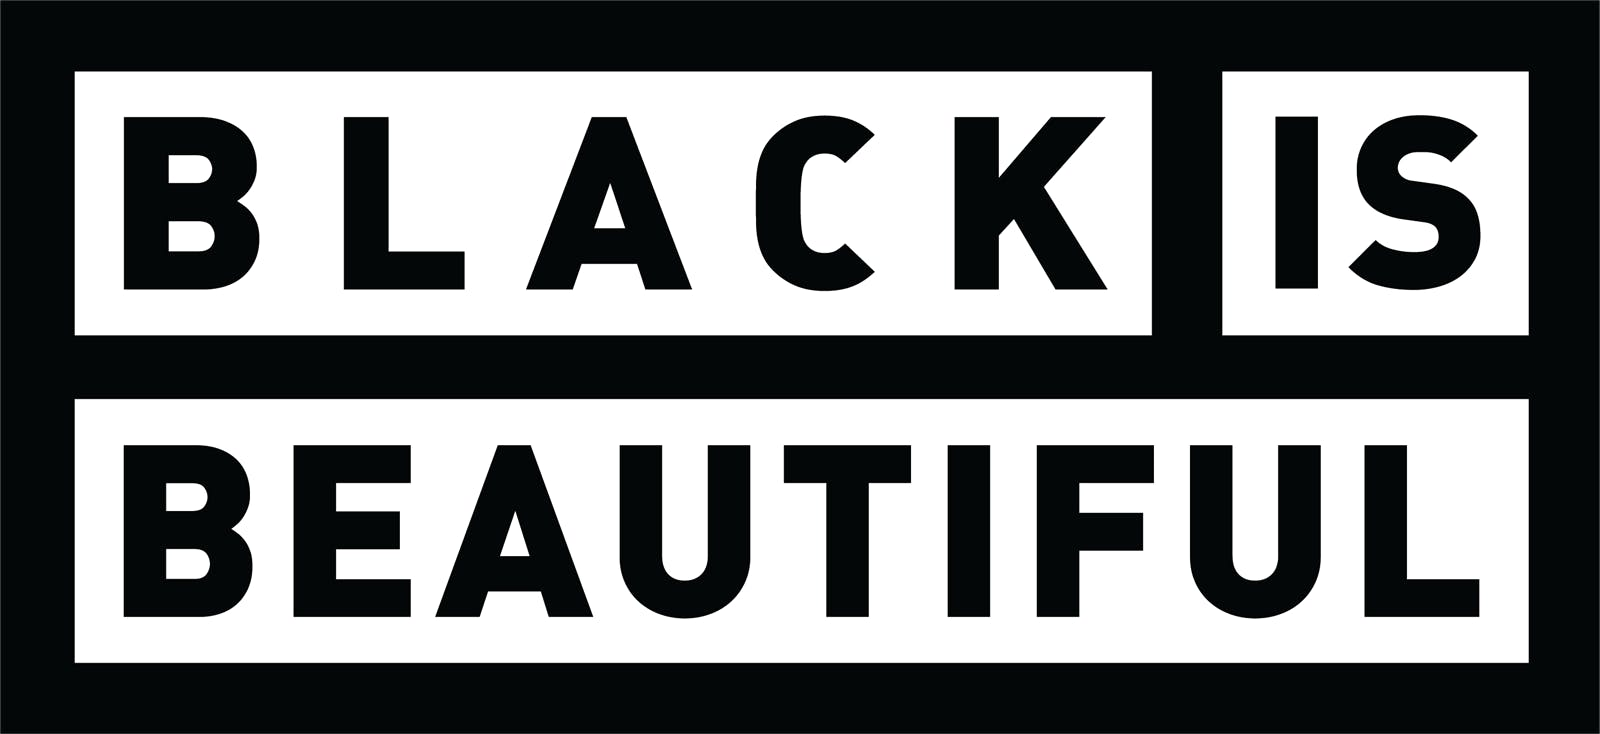 black-is-beautiful@2x